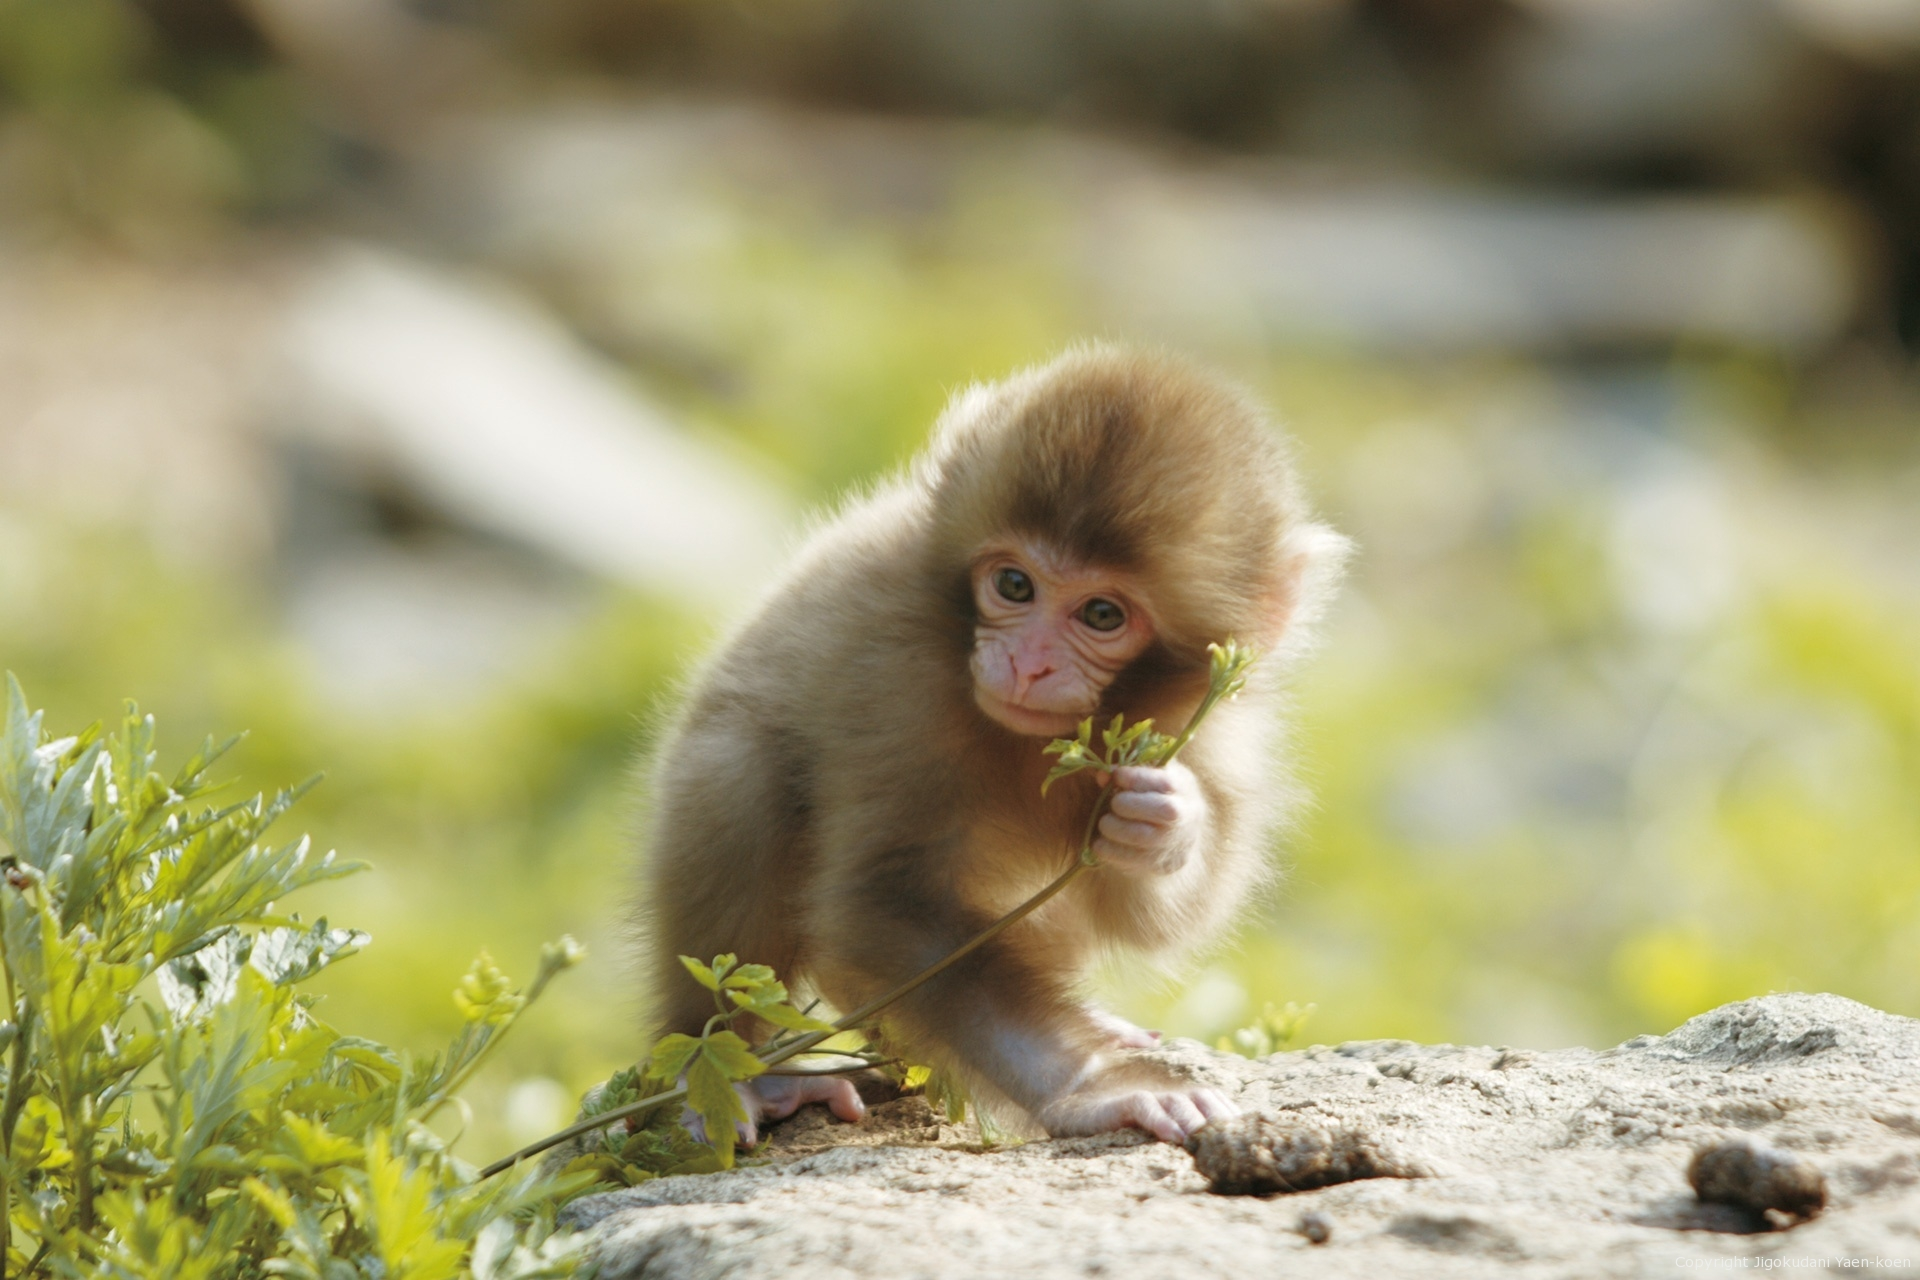 JIGOKUDANI YAEN-KOEN|Welcome , Japanese Monkey to the world